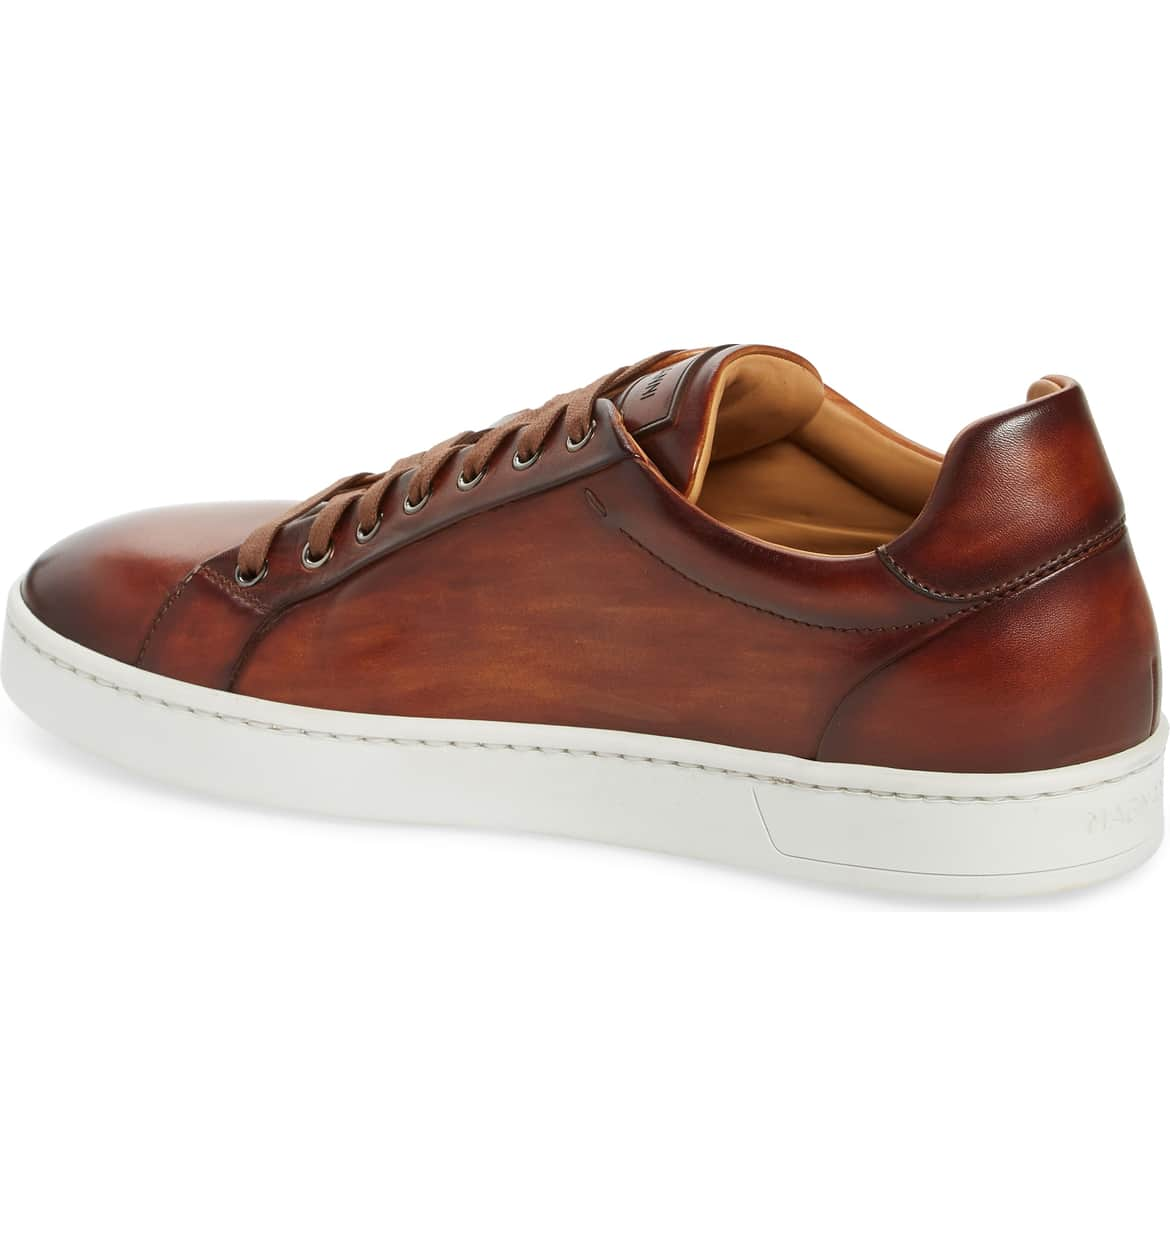 Elonso Low Top Sneaker MAGNANNI – BEST